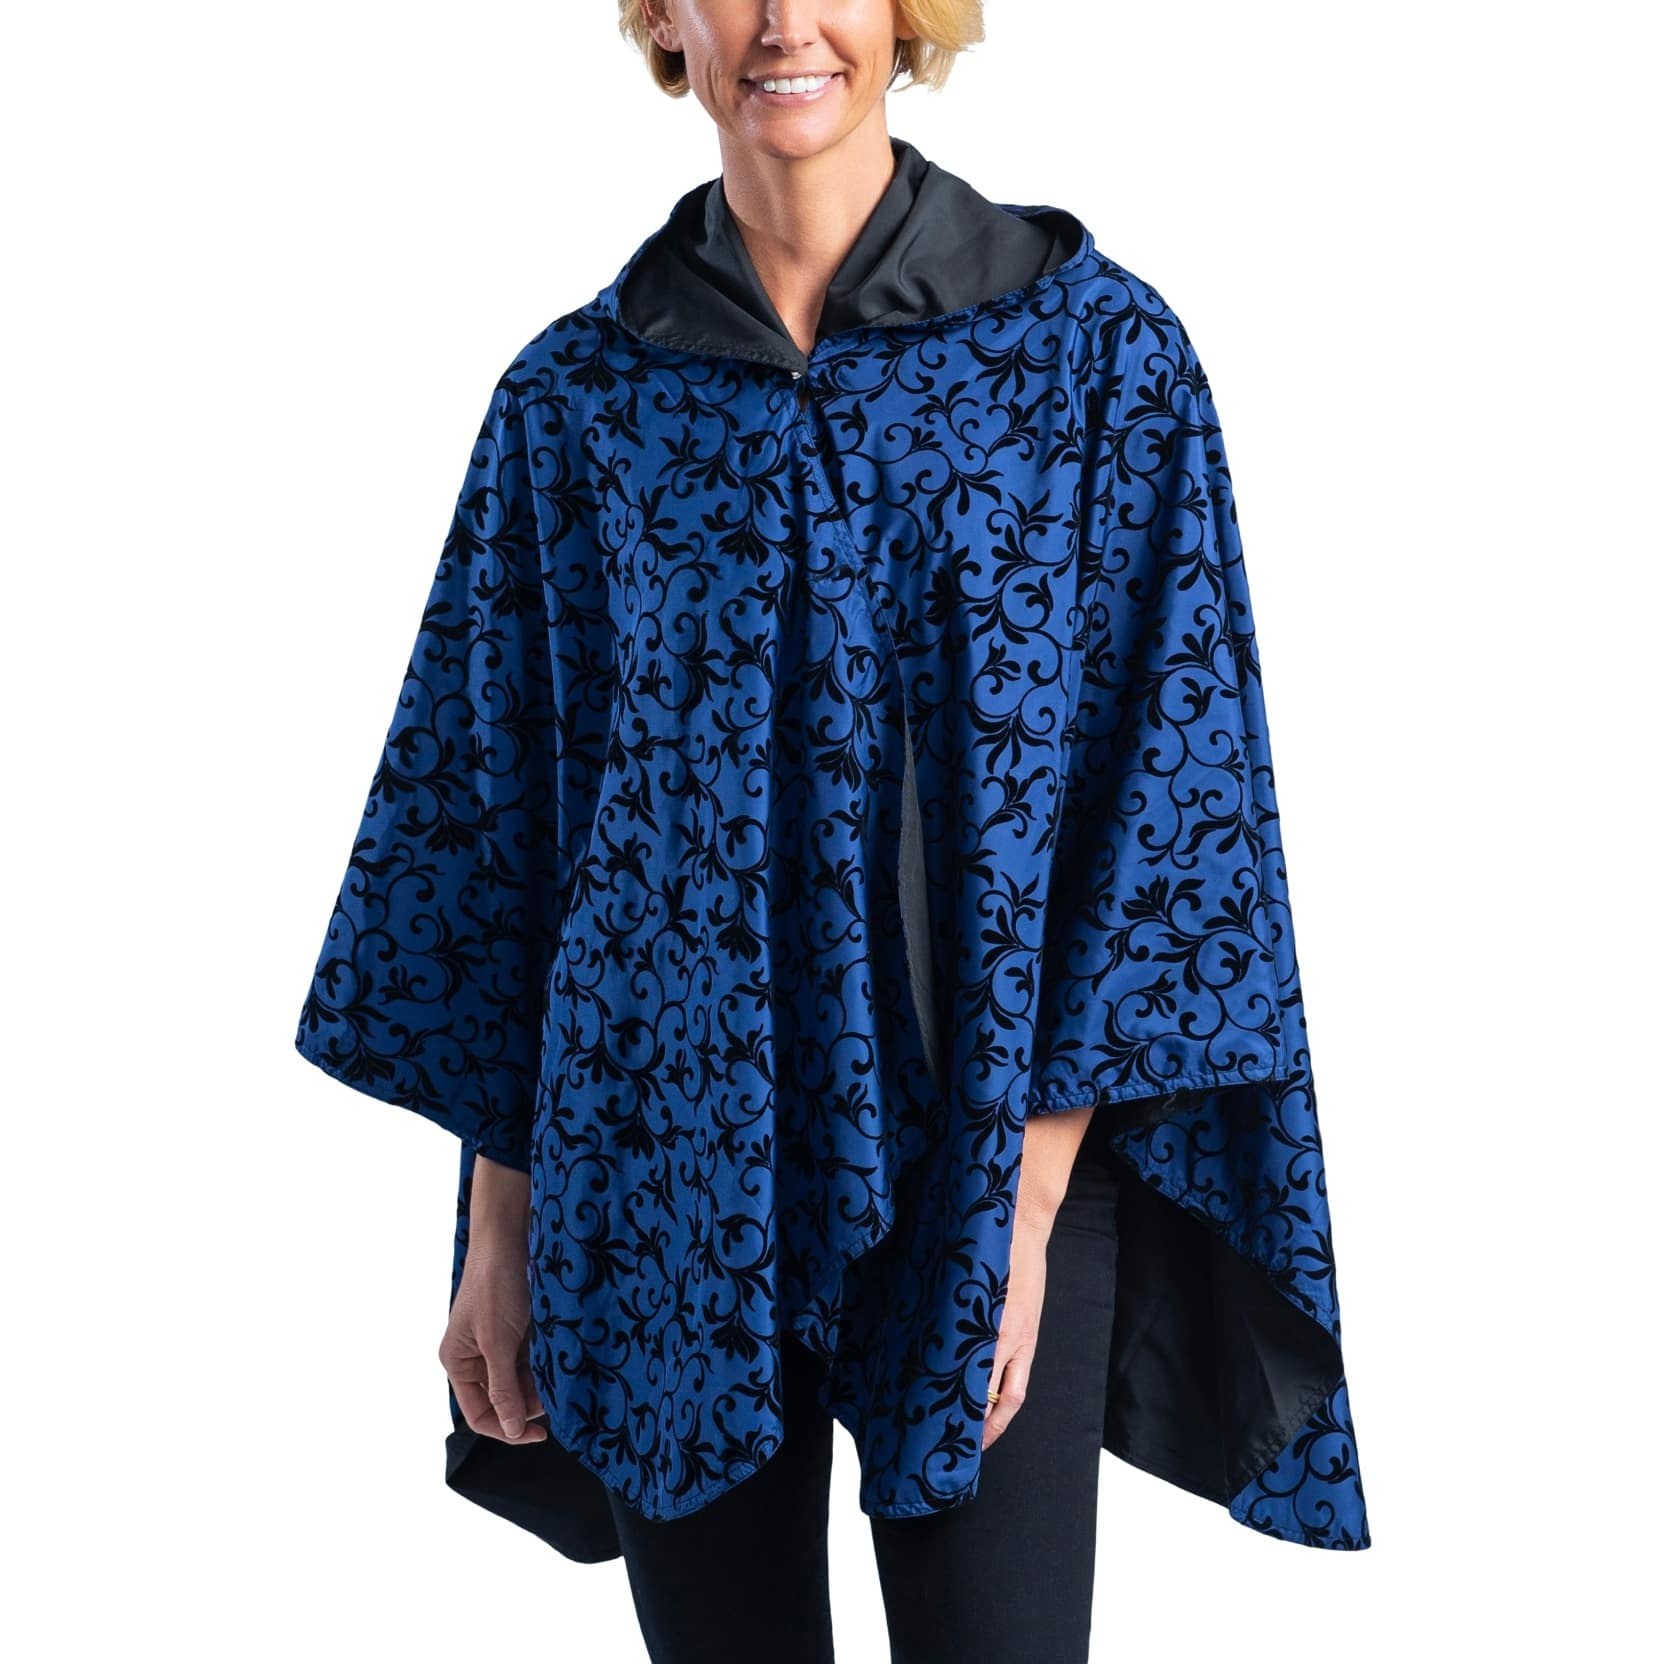 RainCaper Dressy Rain Cape Midnight Blue with Velvet Swirls